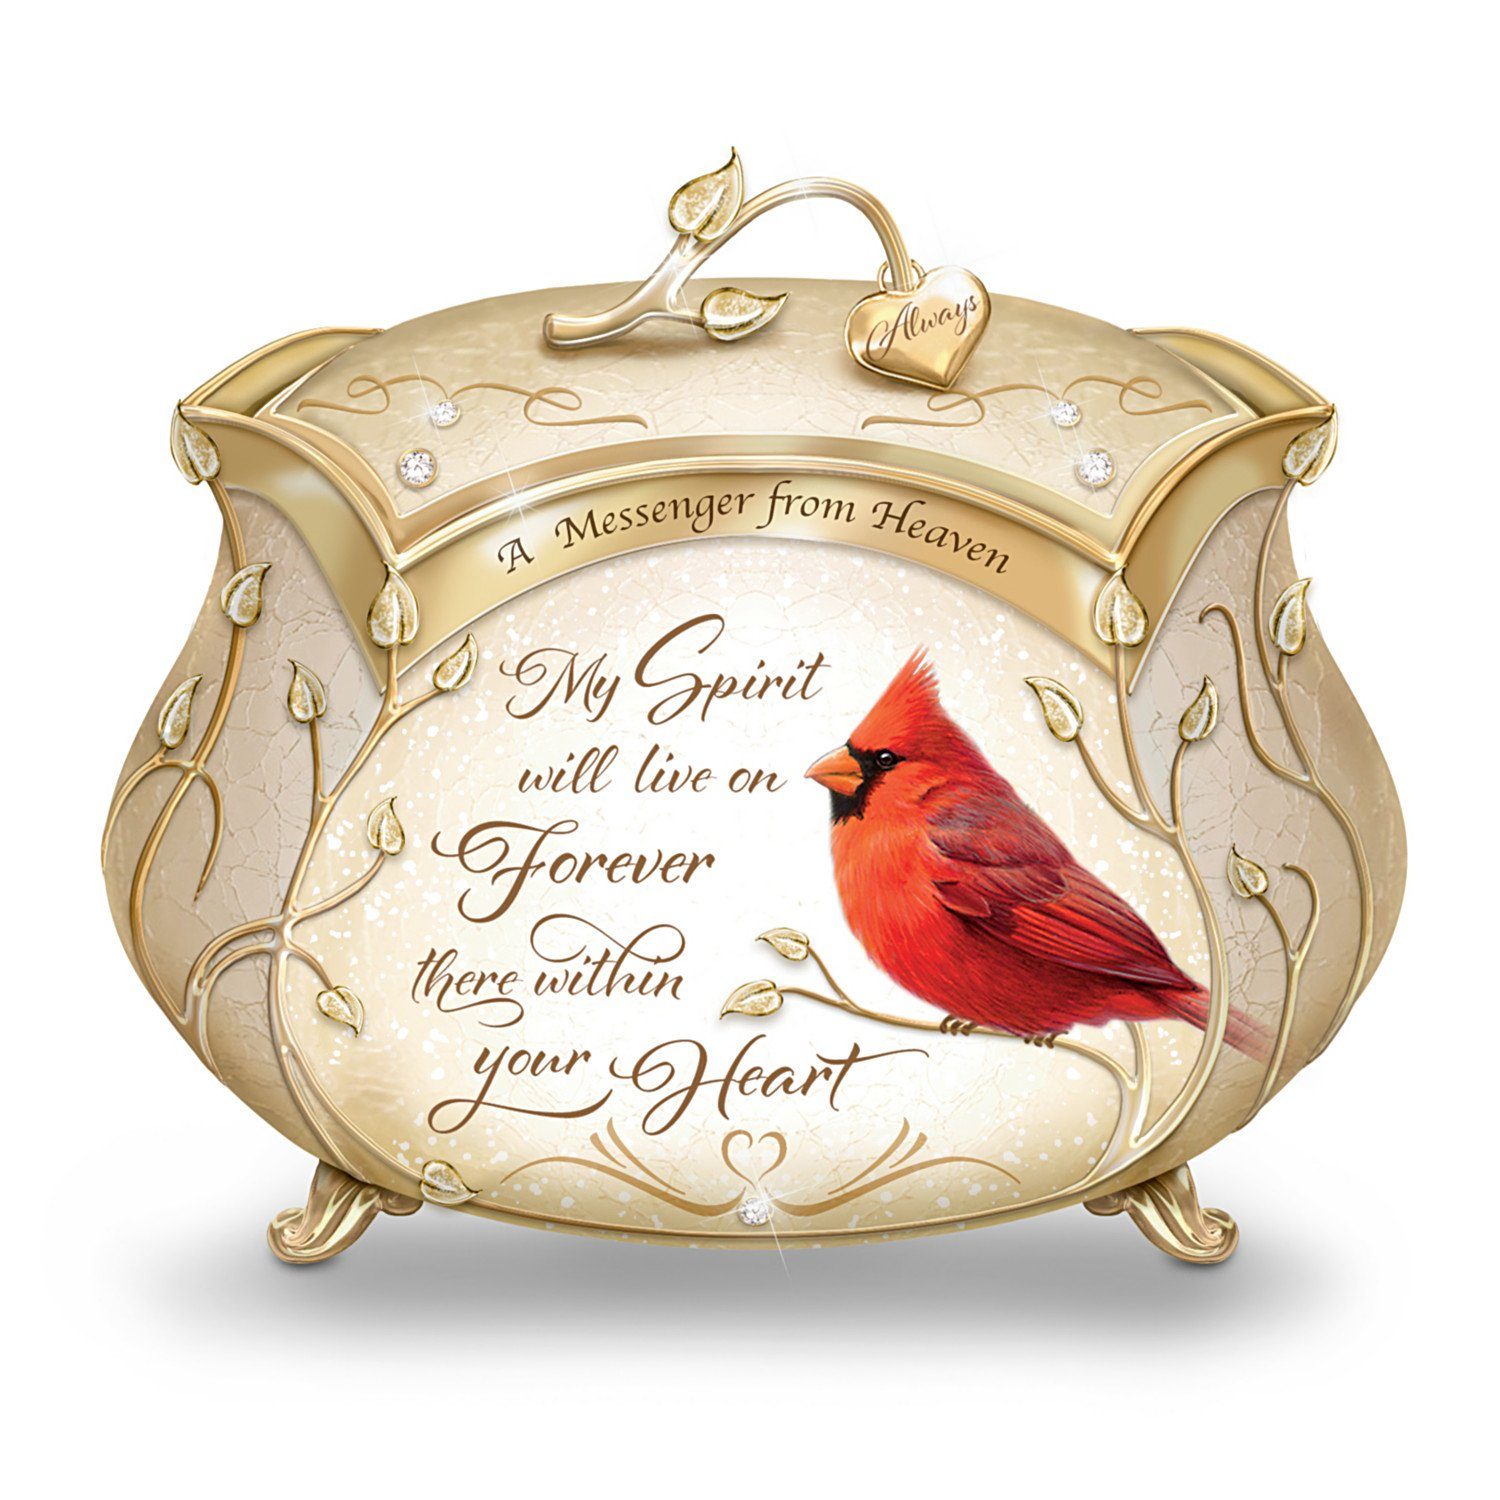 James Hautman A Messenger From Heaven Cardinal Music Box with 22K Gold Accents by The Bradford Exchange by Bradford Exchange (Image #1)